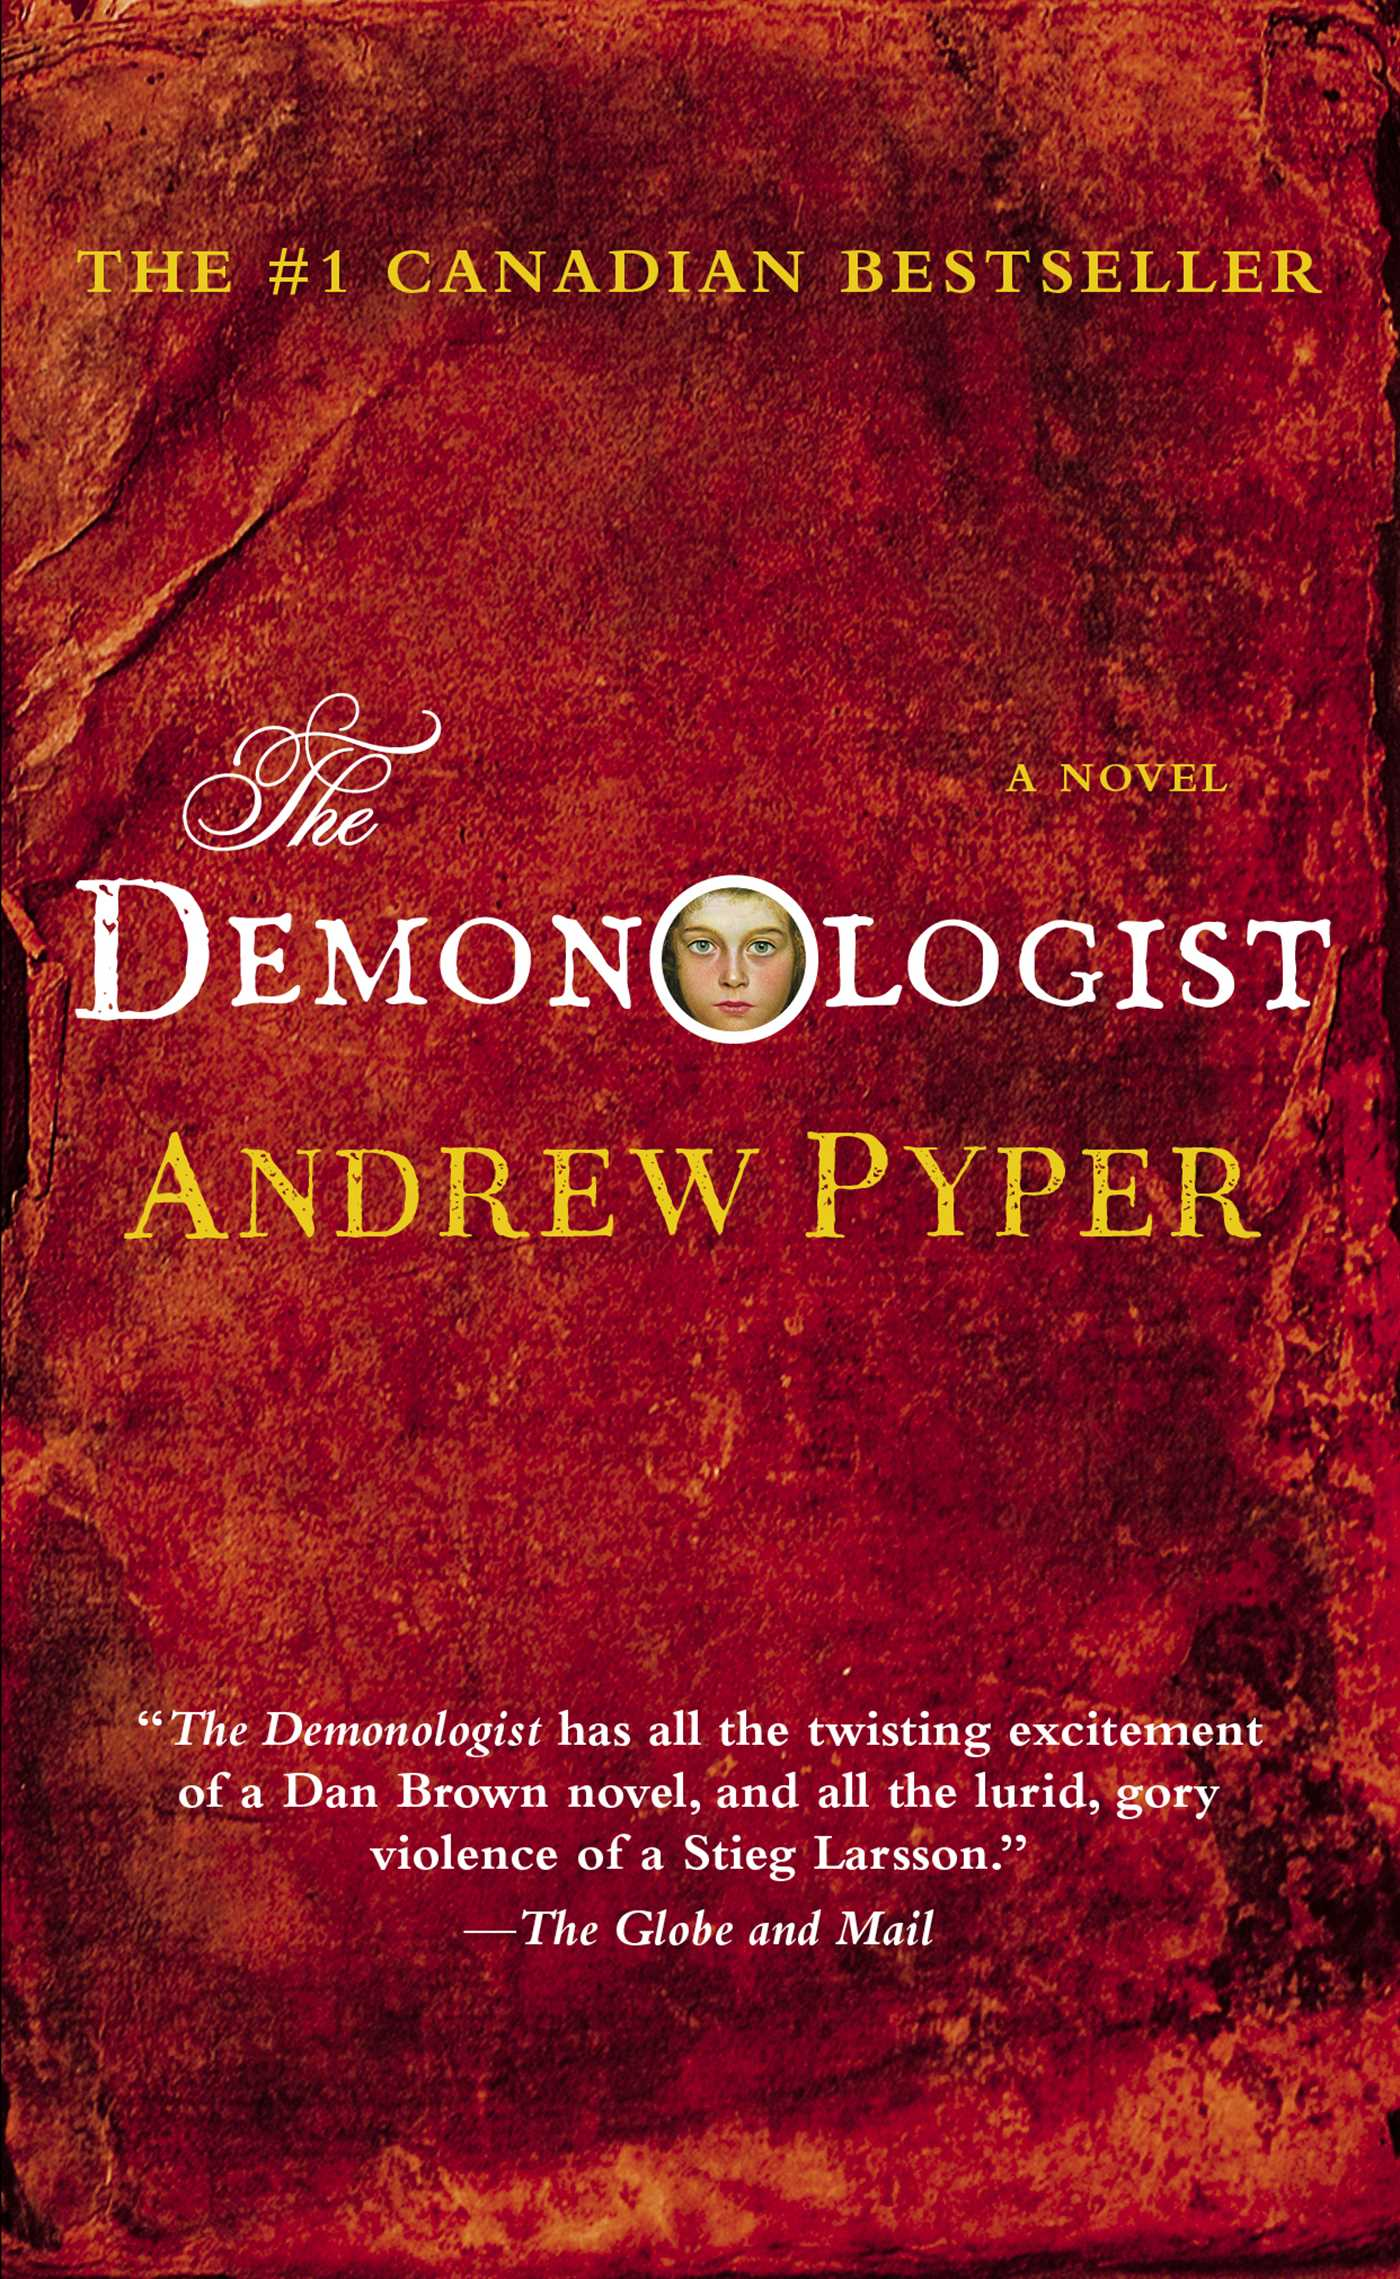 The demonologist 9781476790367 hr